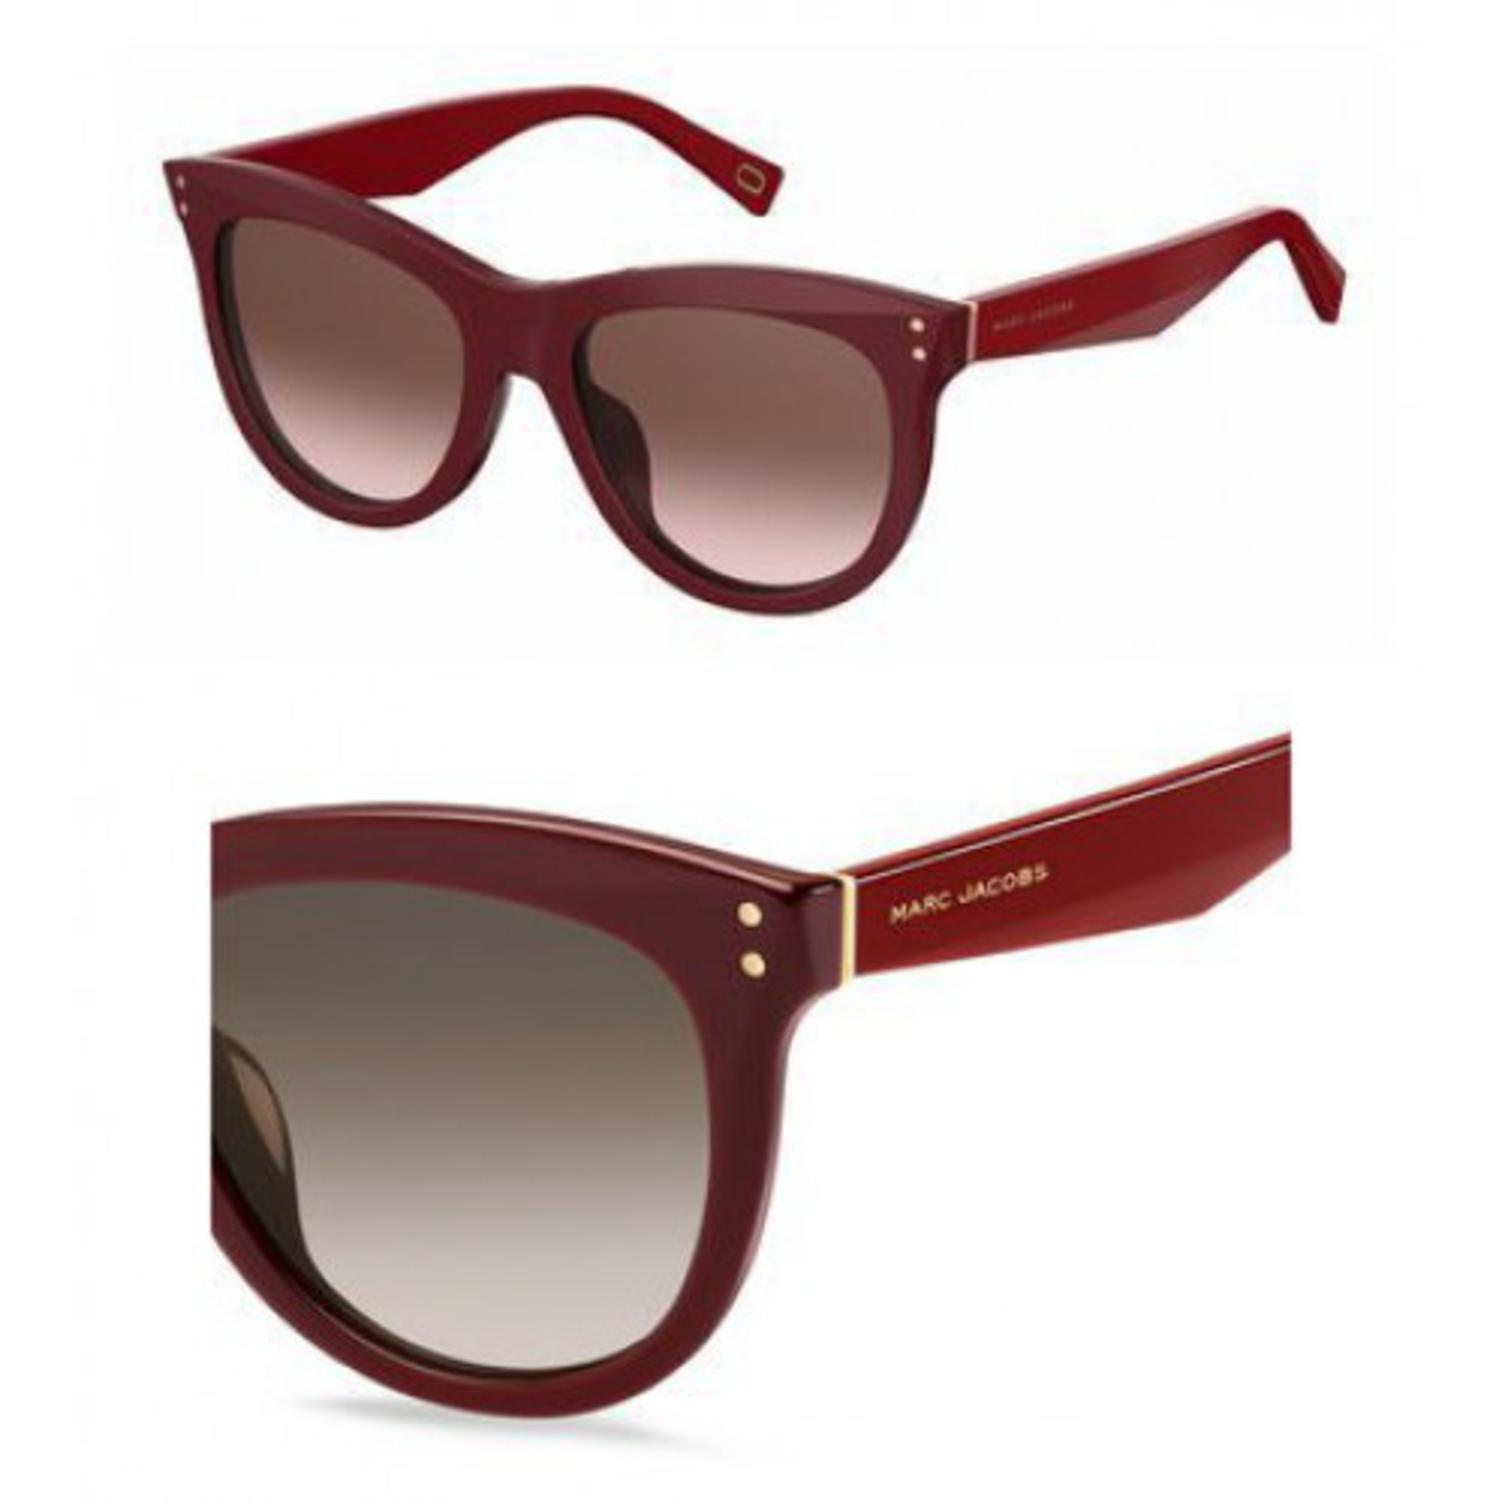 Sunglasses Marc Jacobs 118 /S 0OPE Burgundy / K8 brown gradient lens